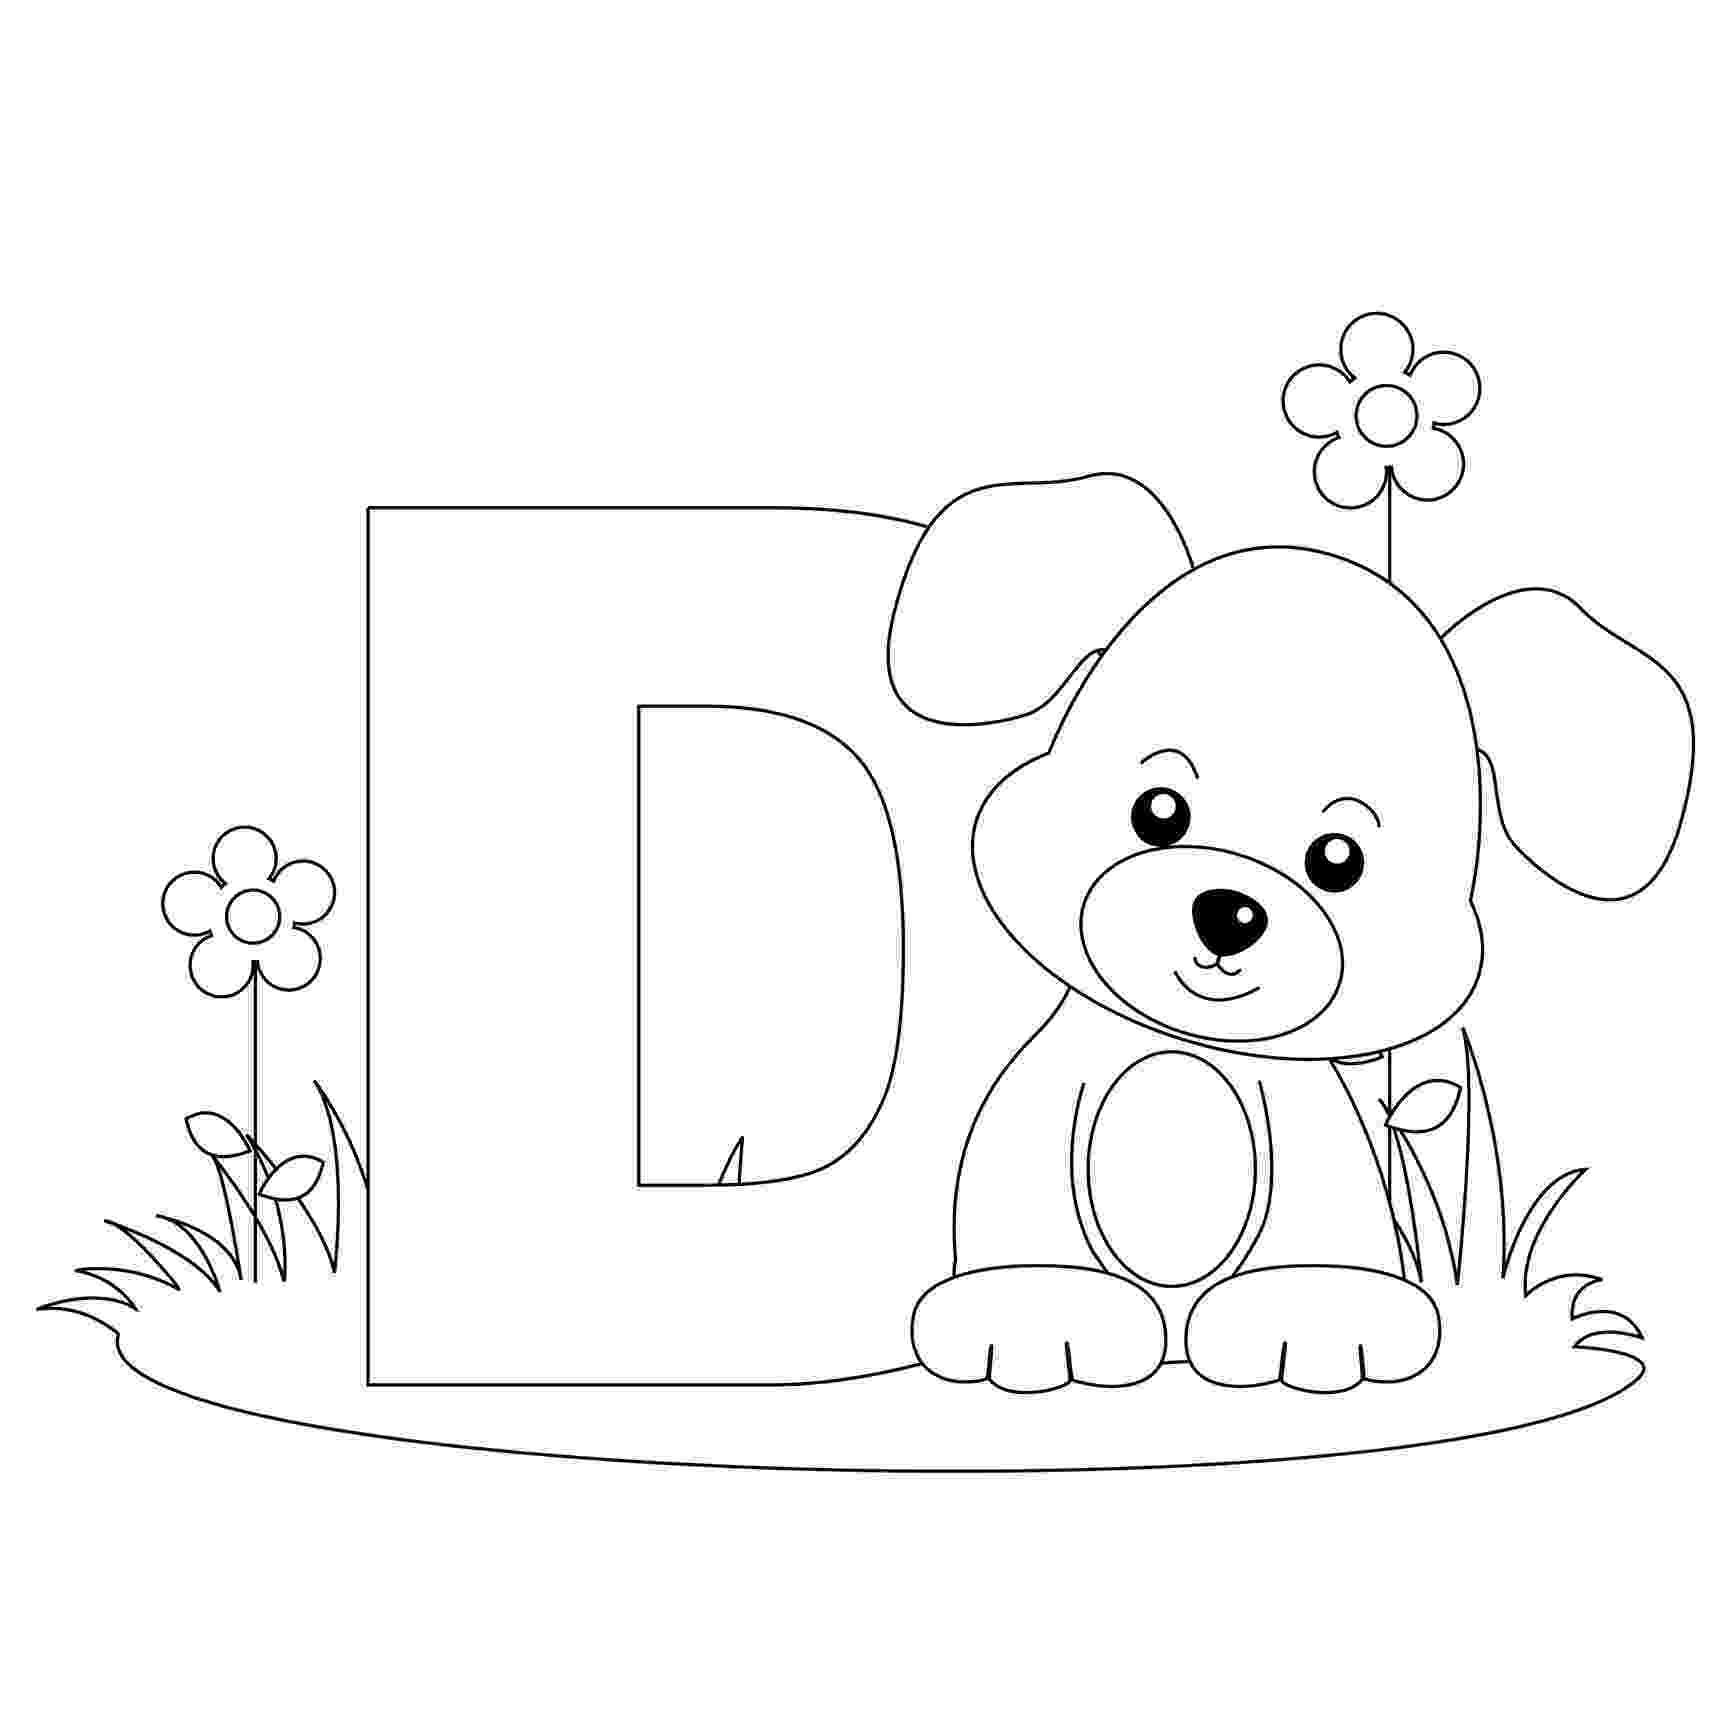 letter d coloring pages for toddlers letter d is for dolphin coloring page free printable pages for toddlers letter d coloring